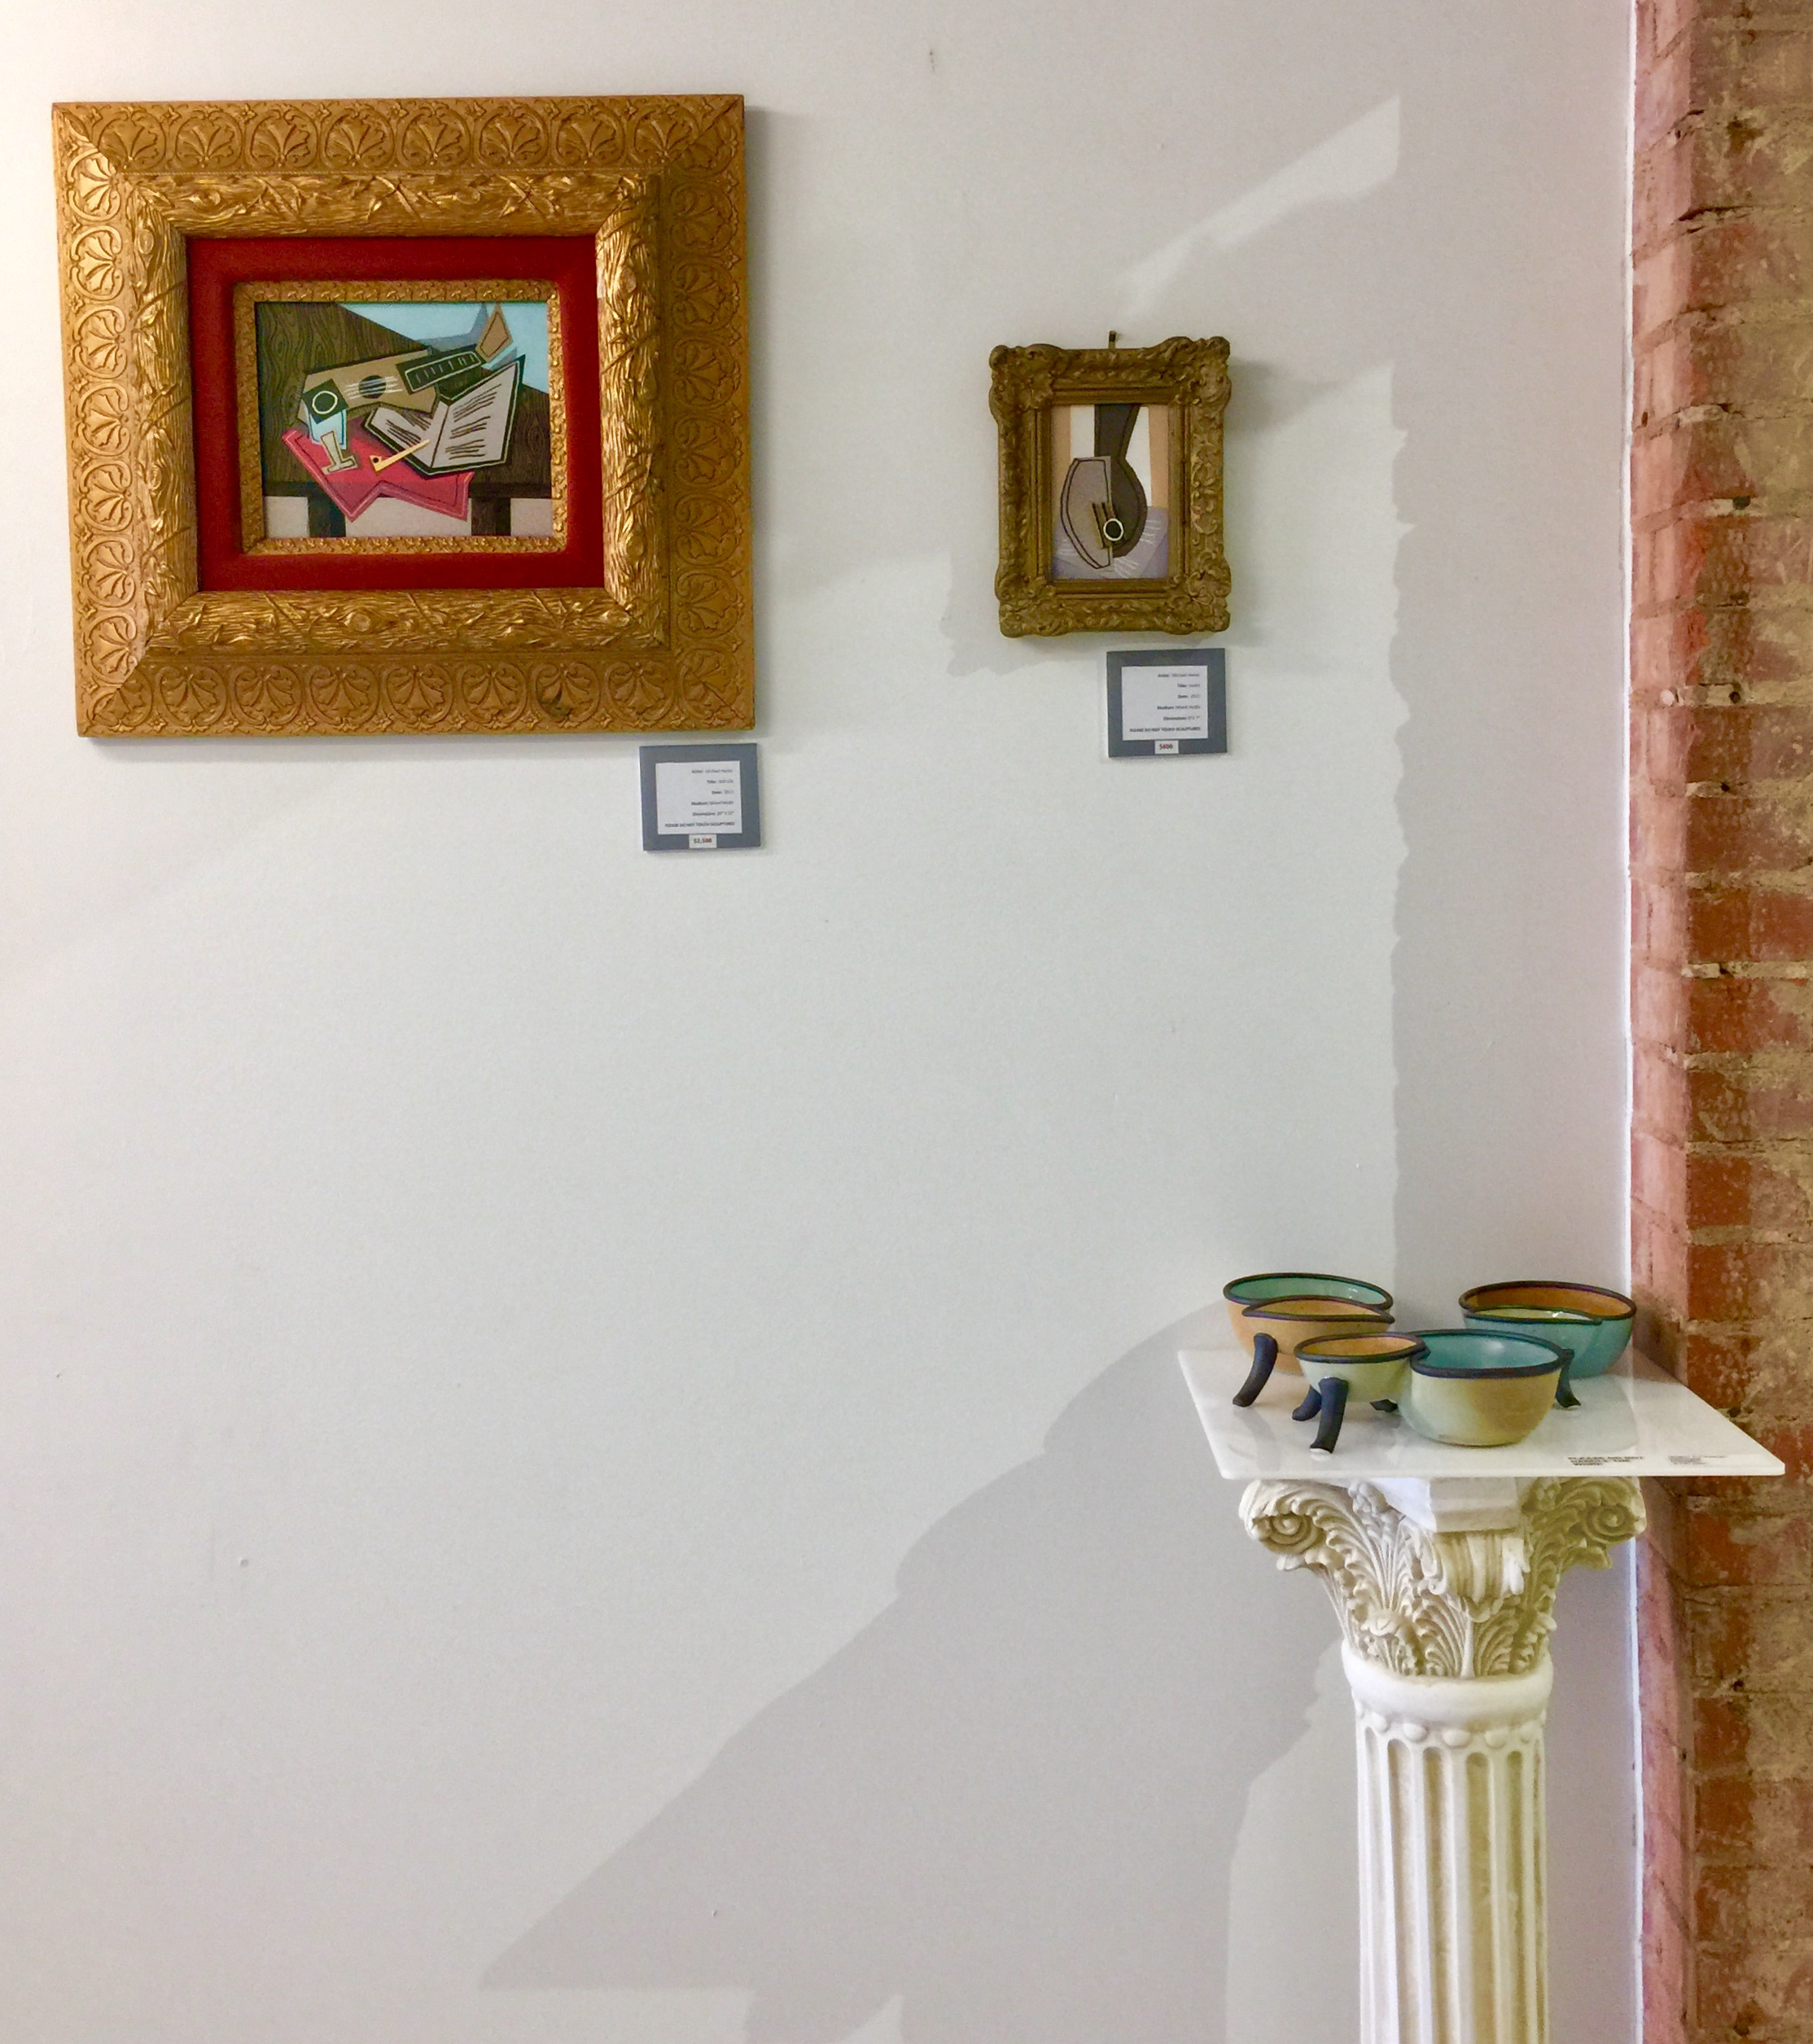 Mixed media by Michael Hanes, sculpture by Jeremy A Fineman